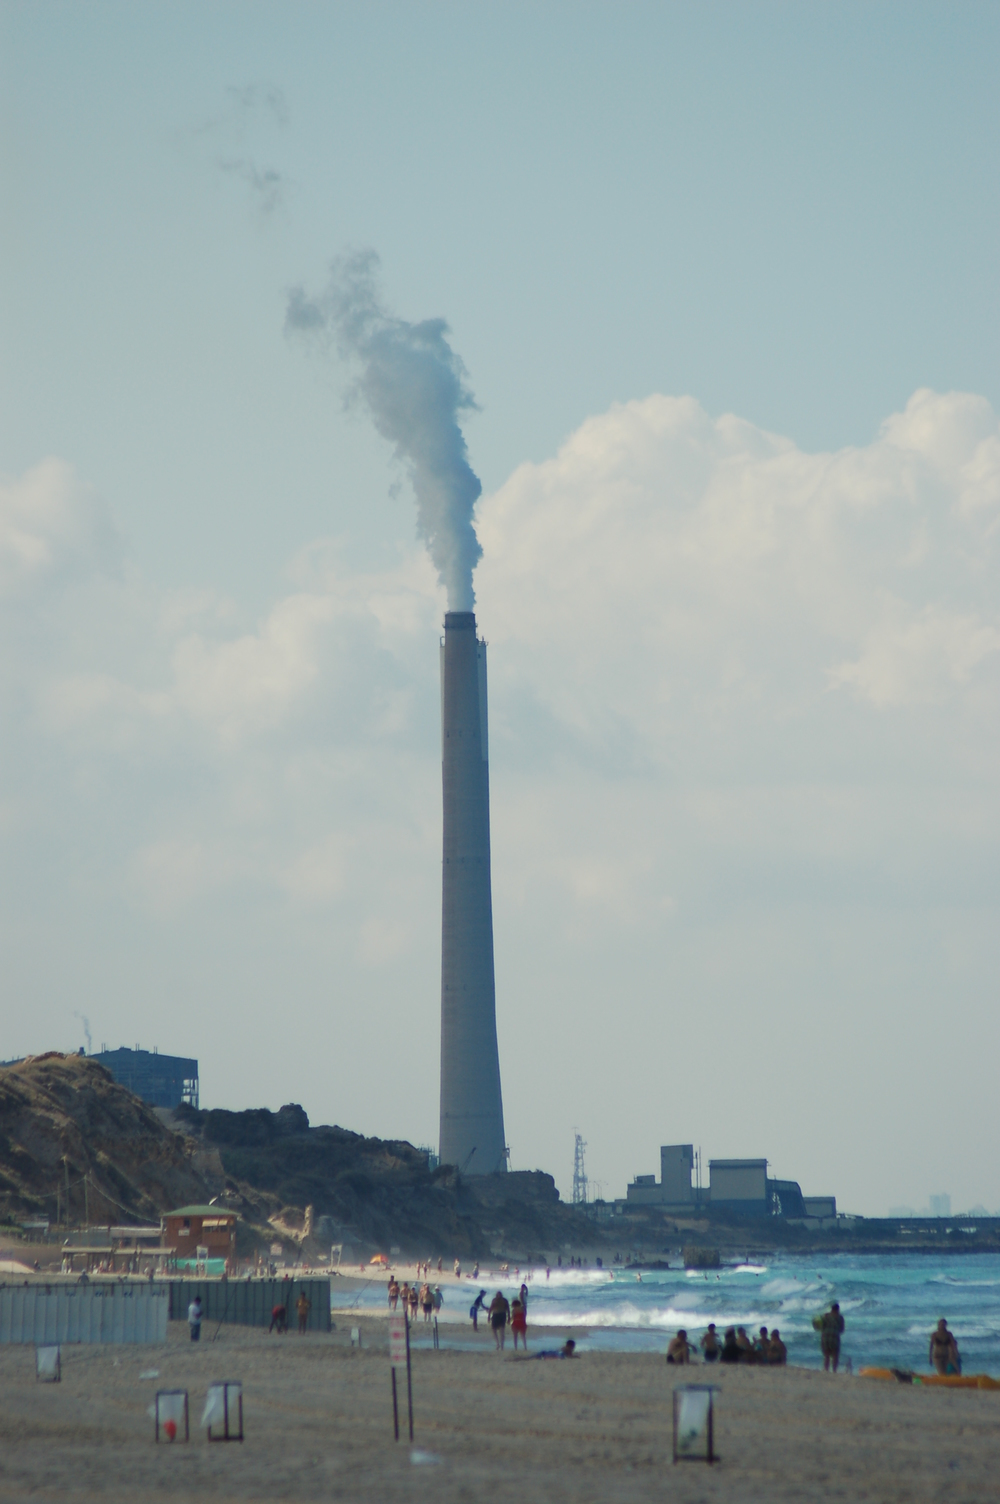 Coal powered electric generating facility, south of a municipal beach Credit: David King from Haifa, Israel via Wikimedia Commons.